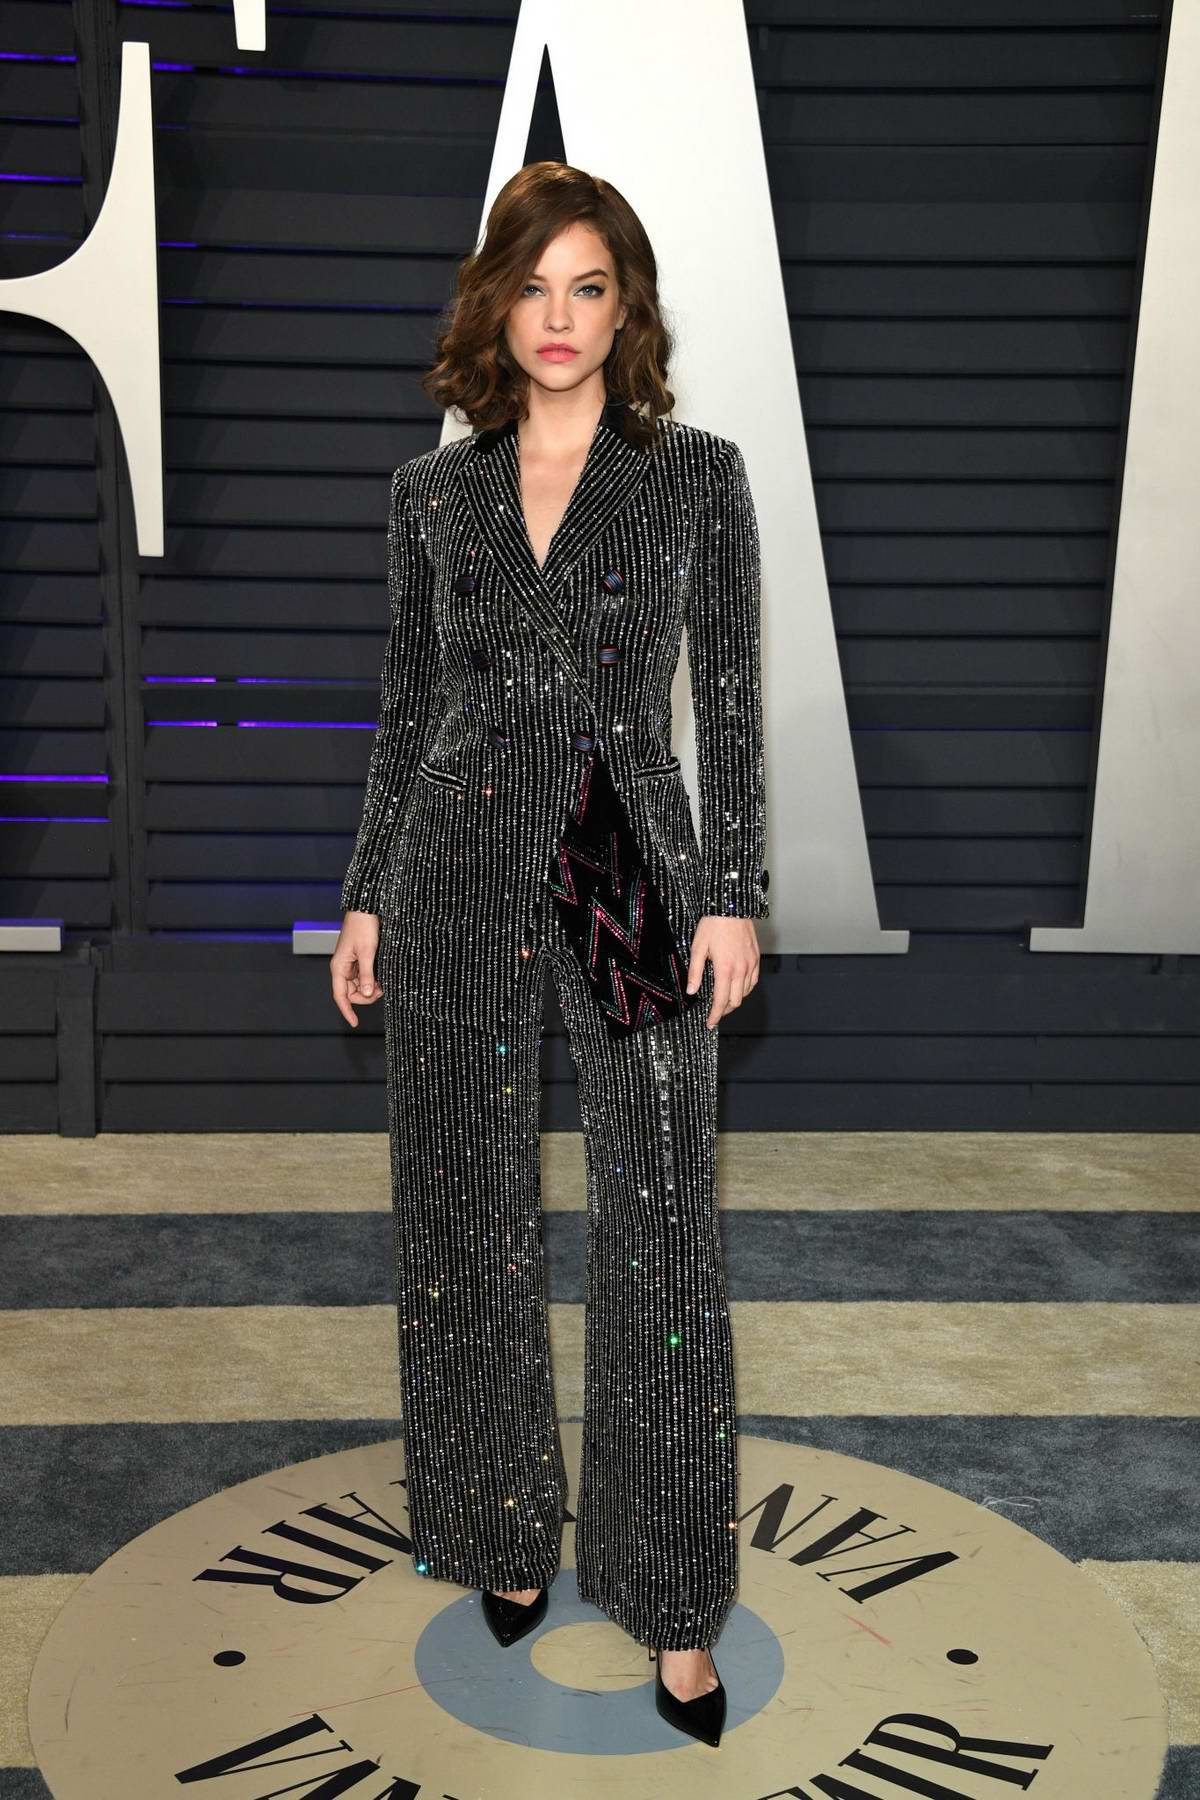 Barbara Palvin attends the Vanity Fair Oscar Party at Wallis Annenberg Center for the Performing Arts in Beverly Hills, California